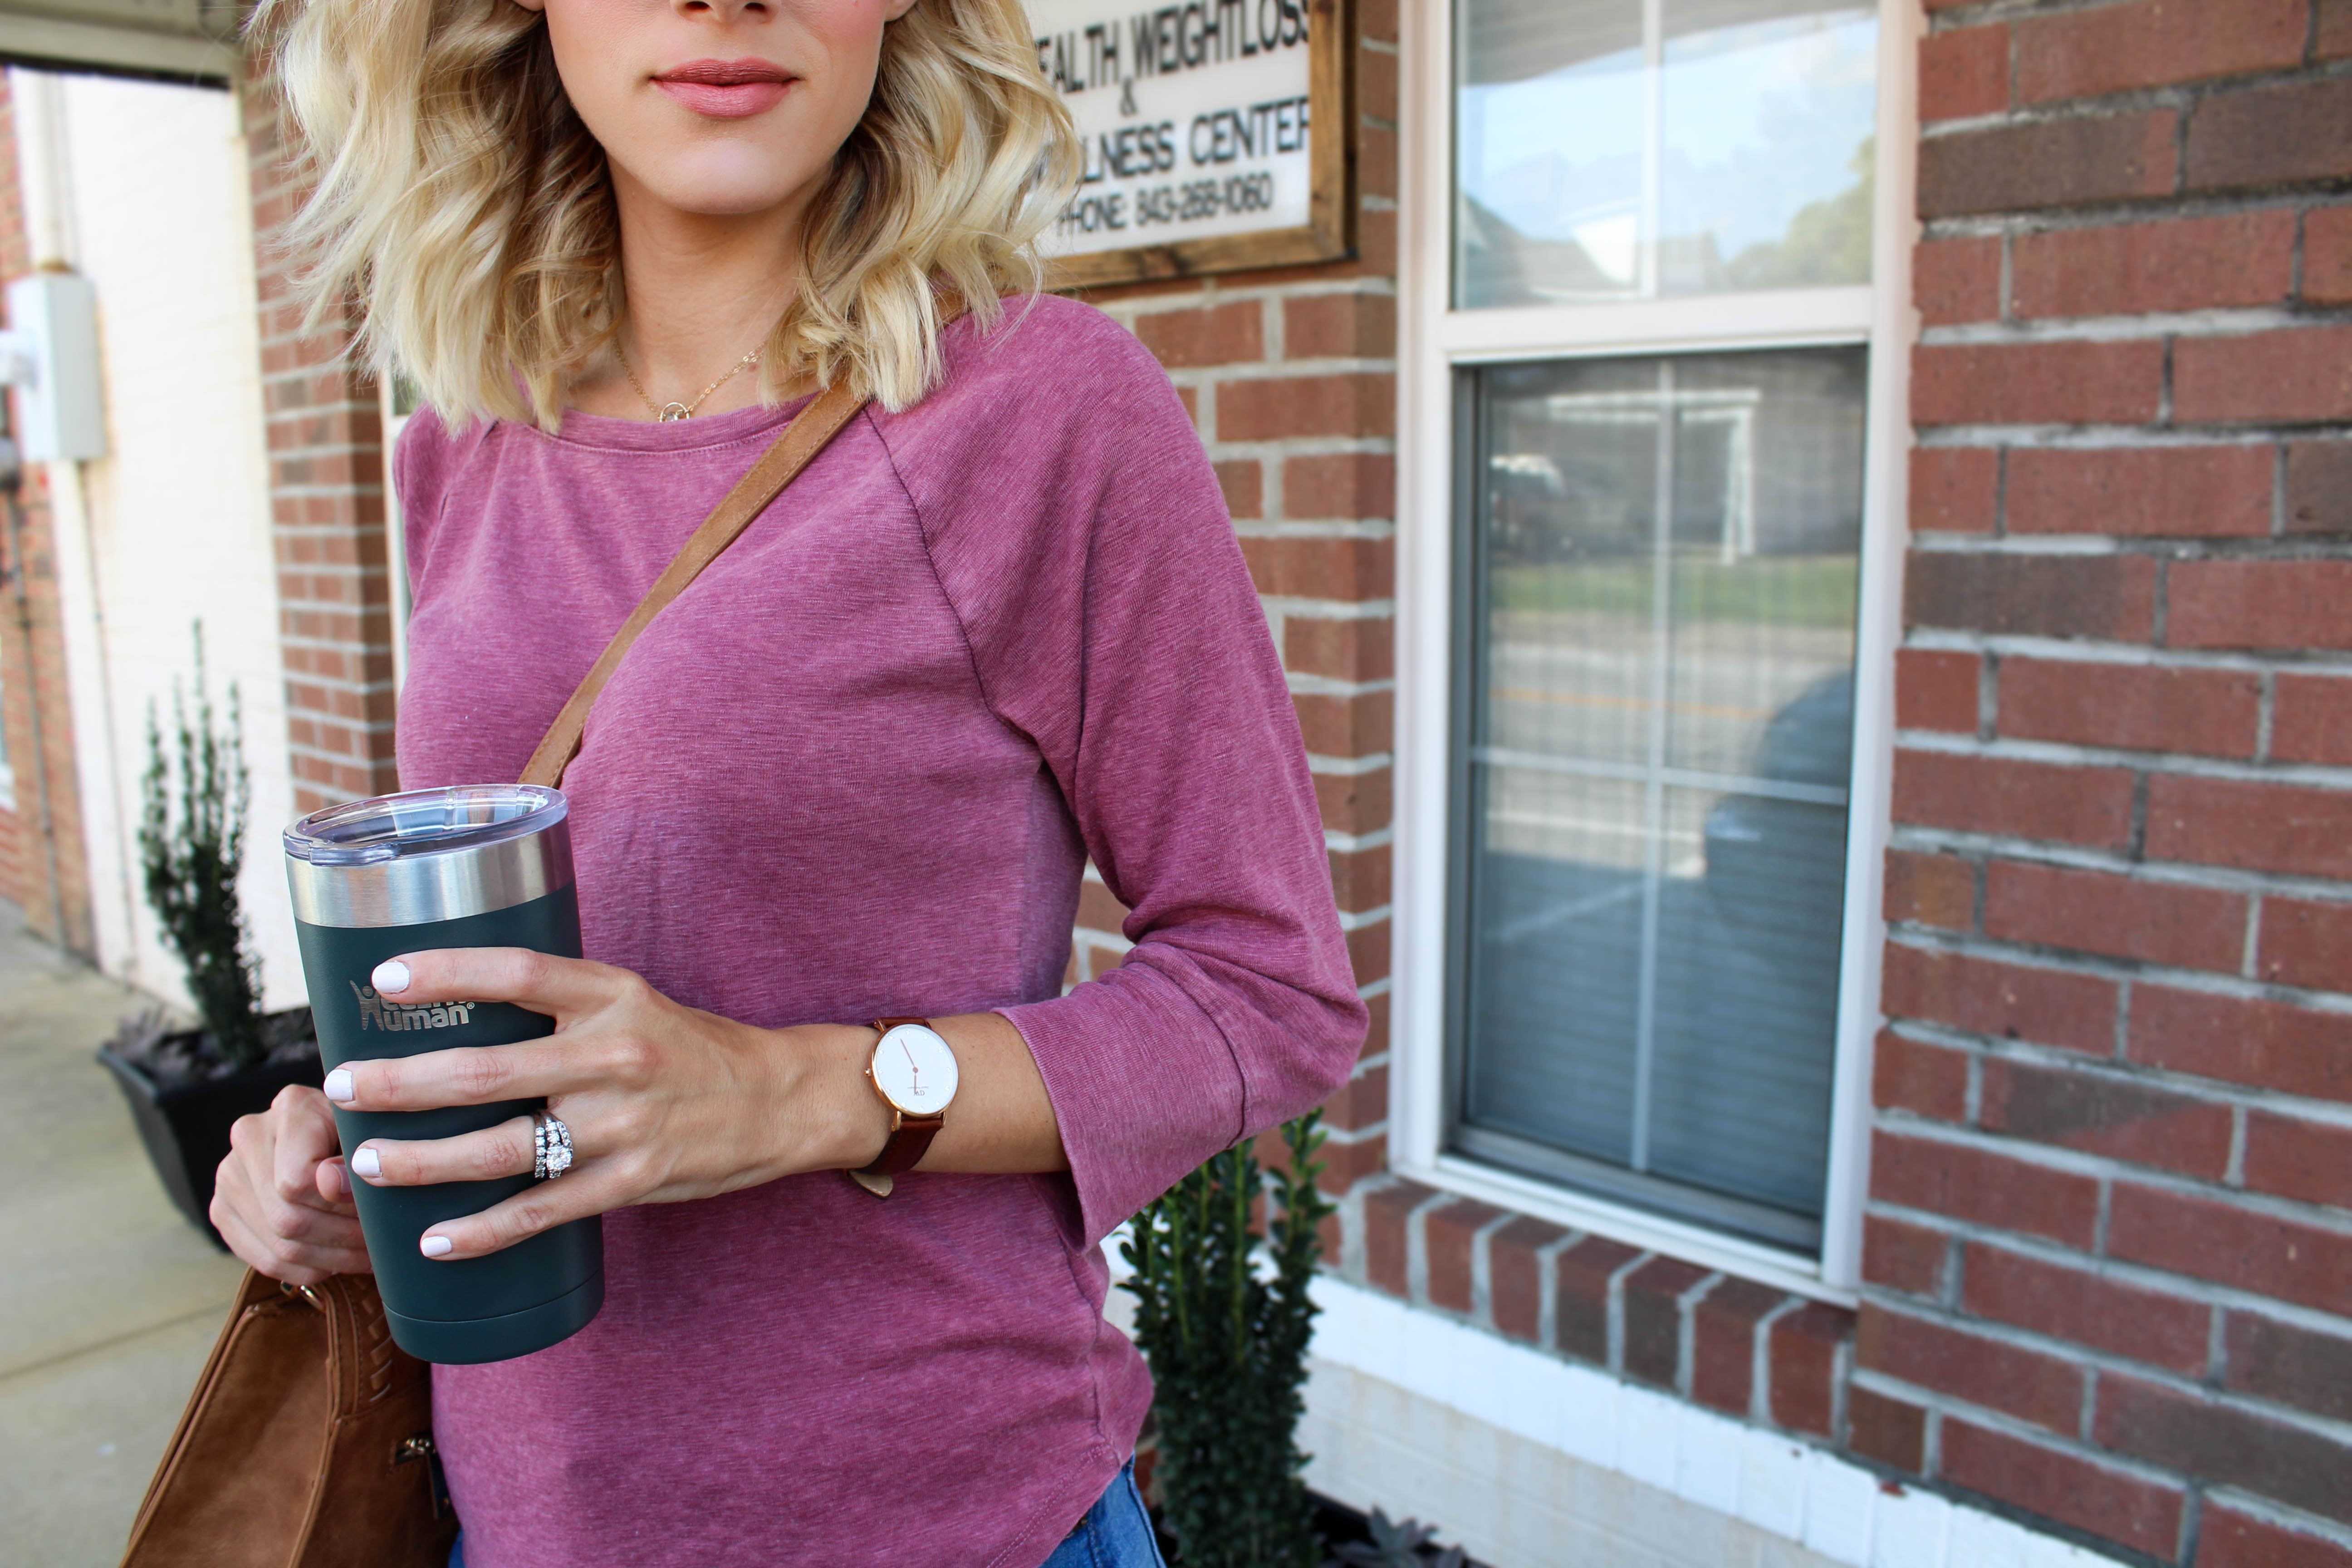 Time Management Tips From the Mom Who Needs It Most